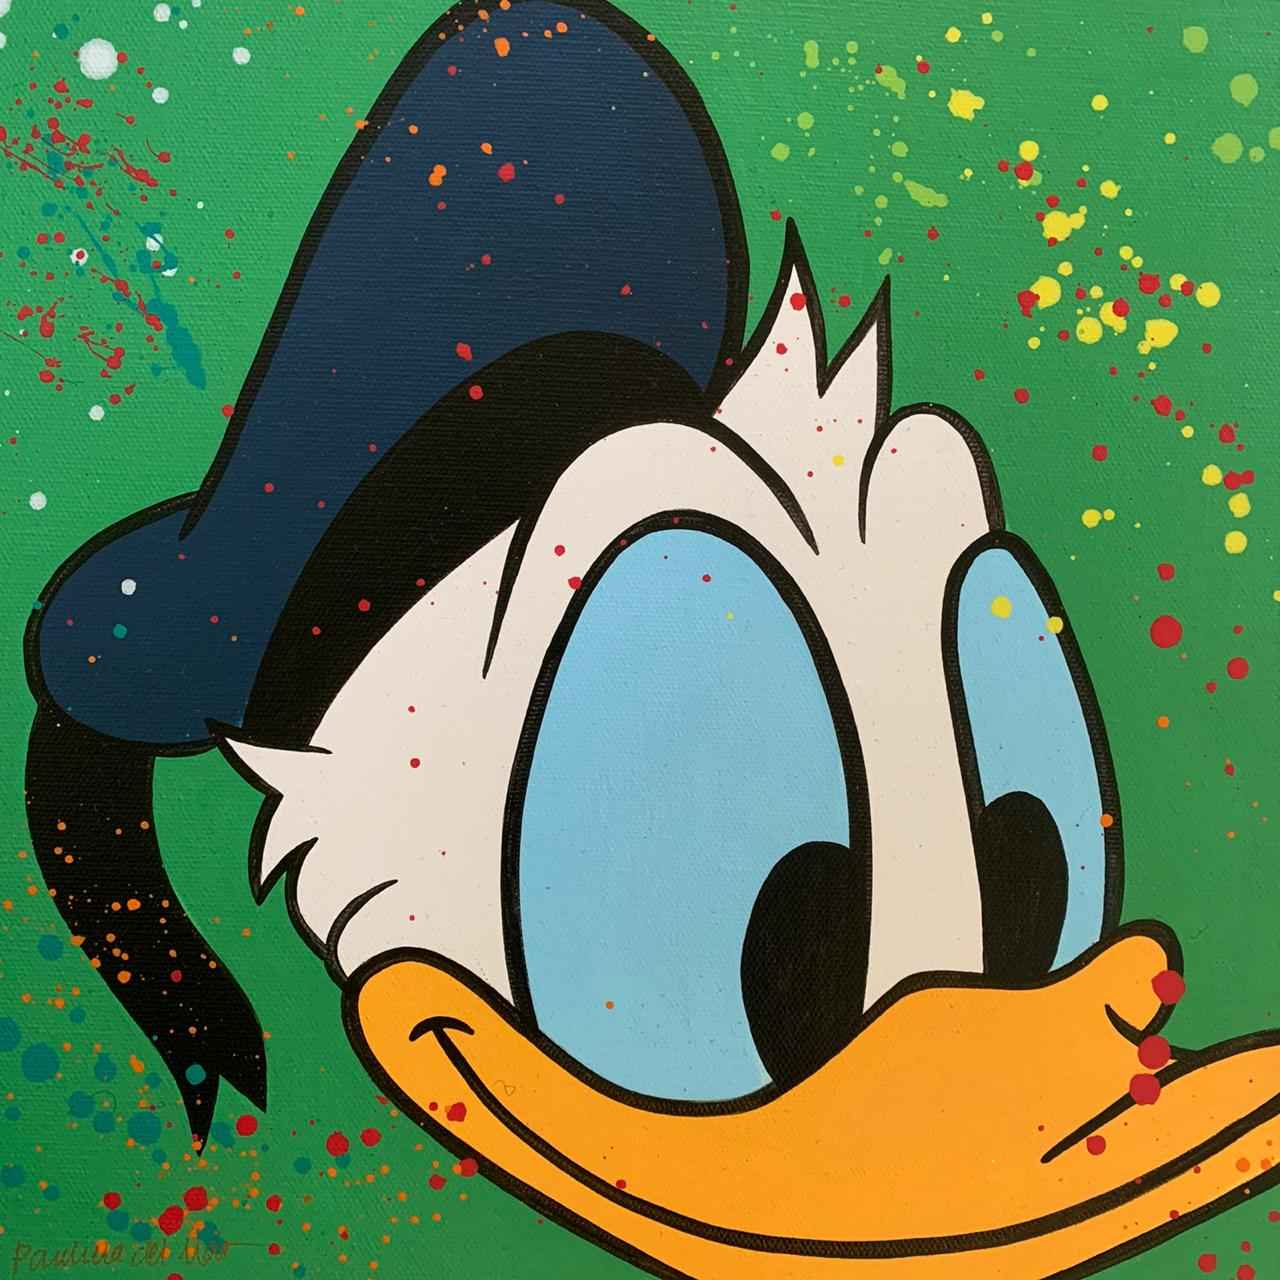 Donald in Green